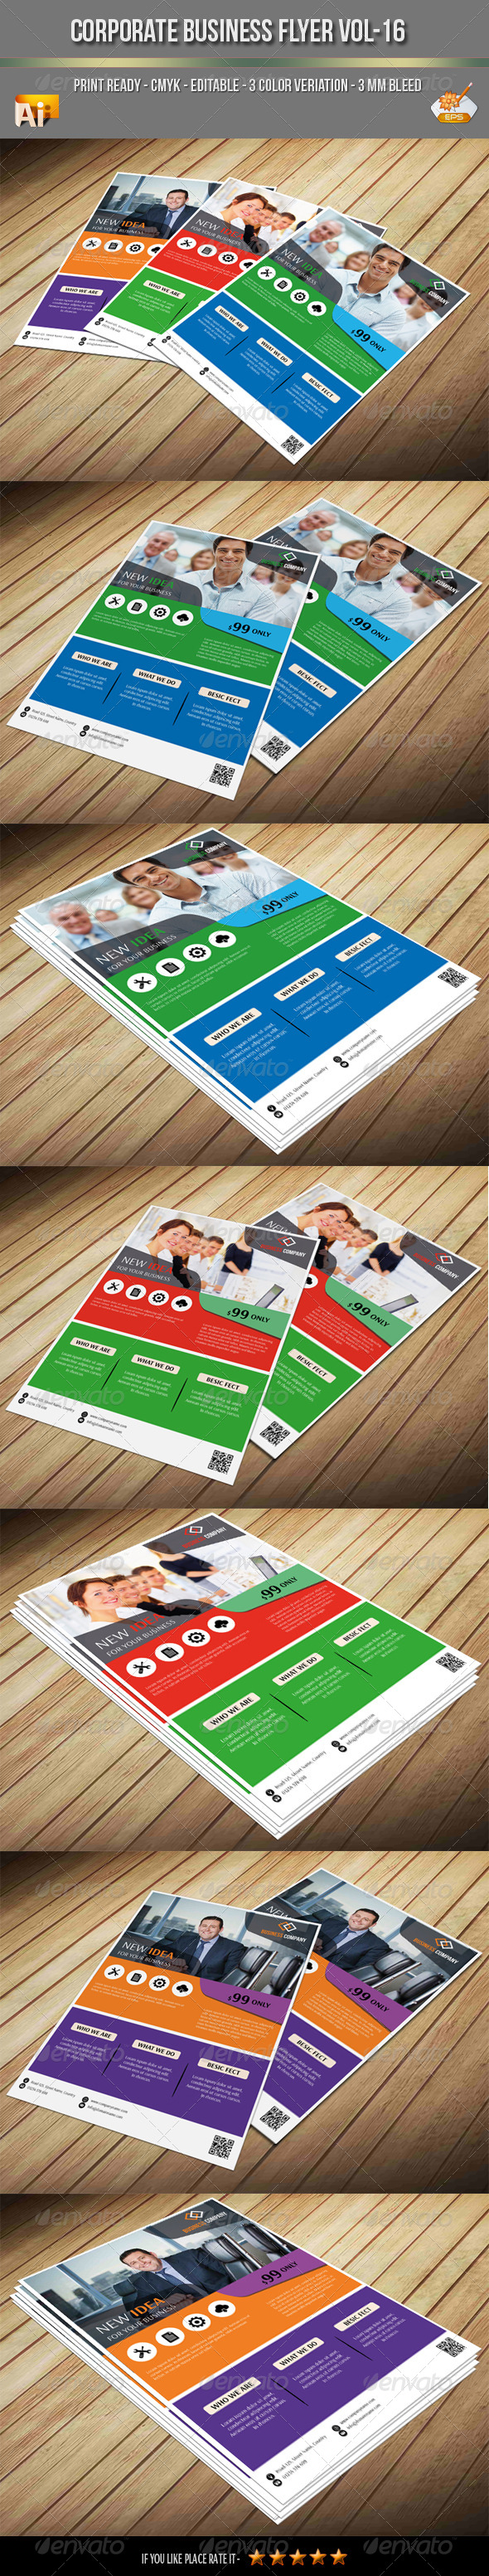 Corporate Business Flyer Vol-16